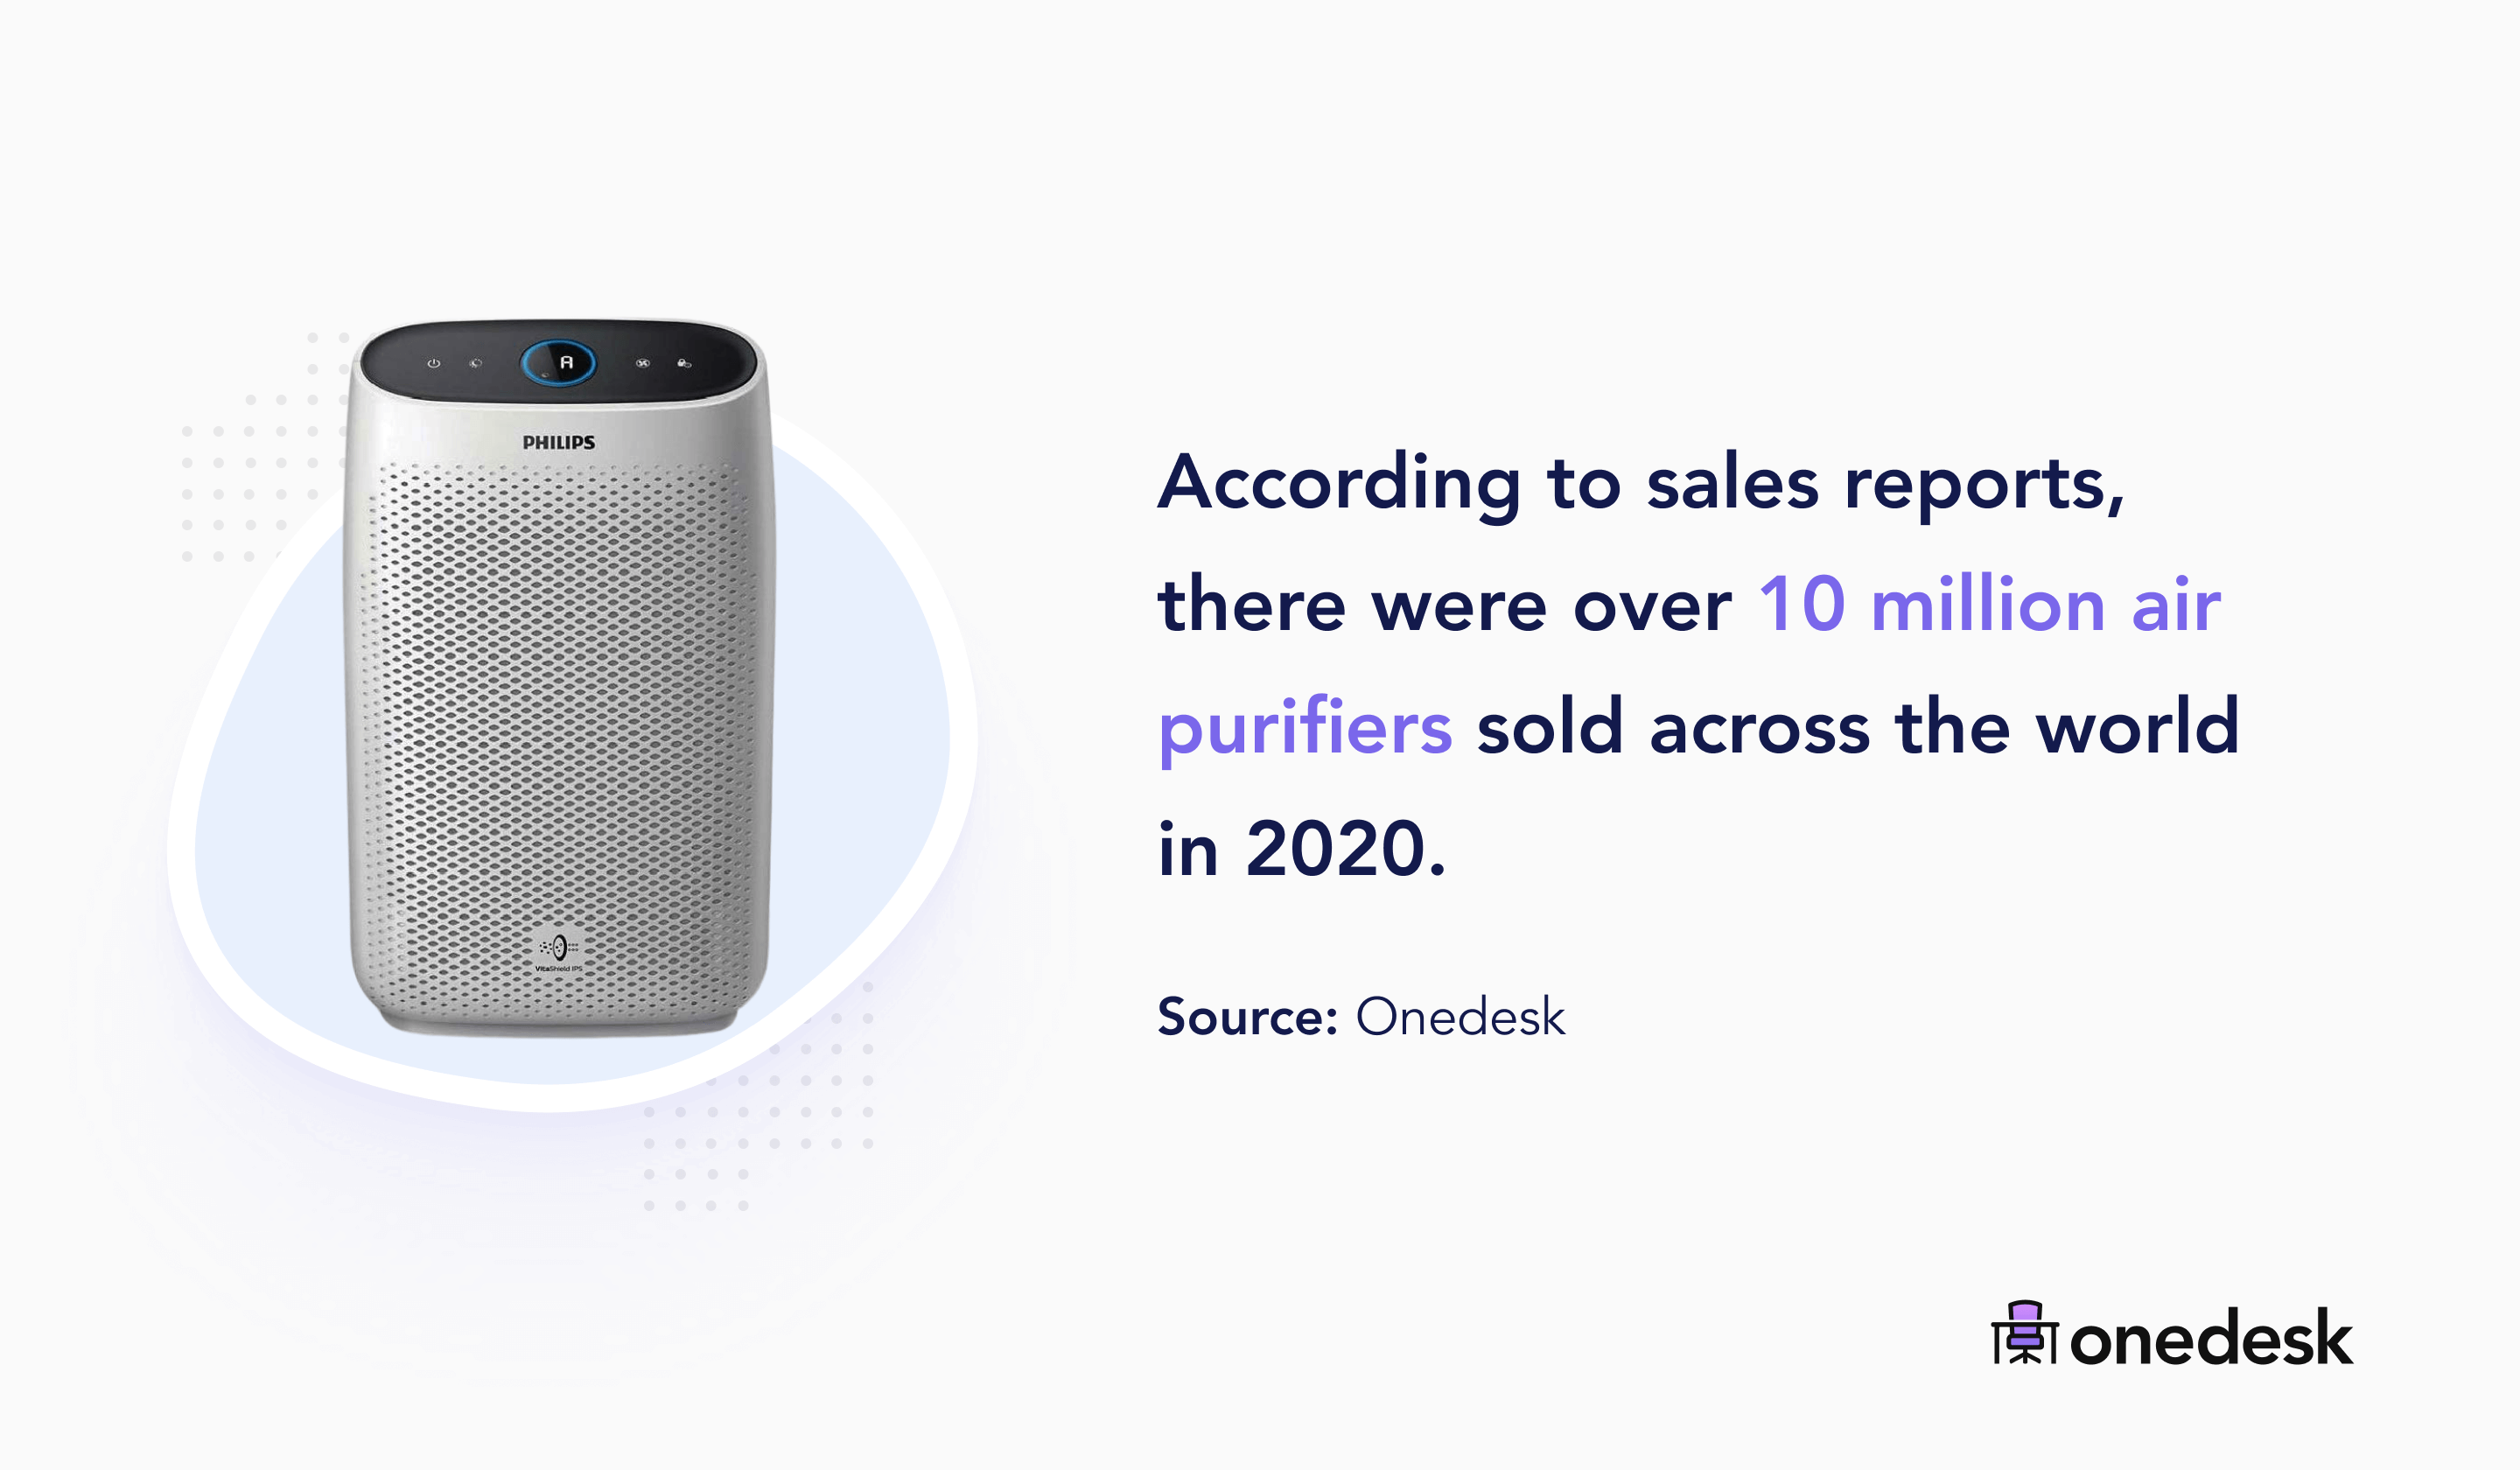 10 million air purifiers sold